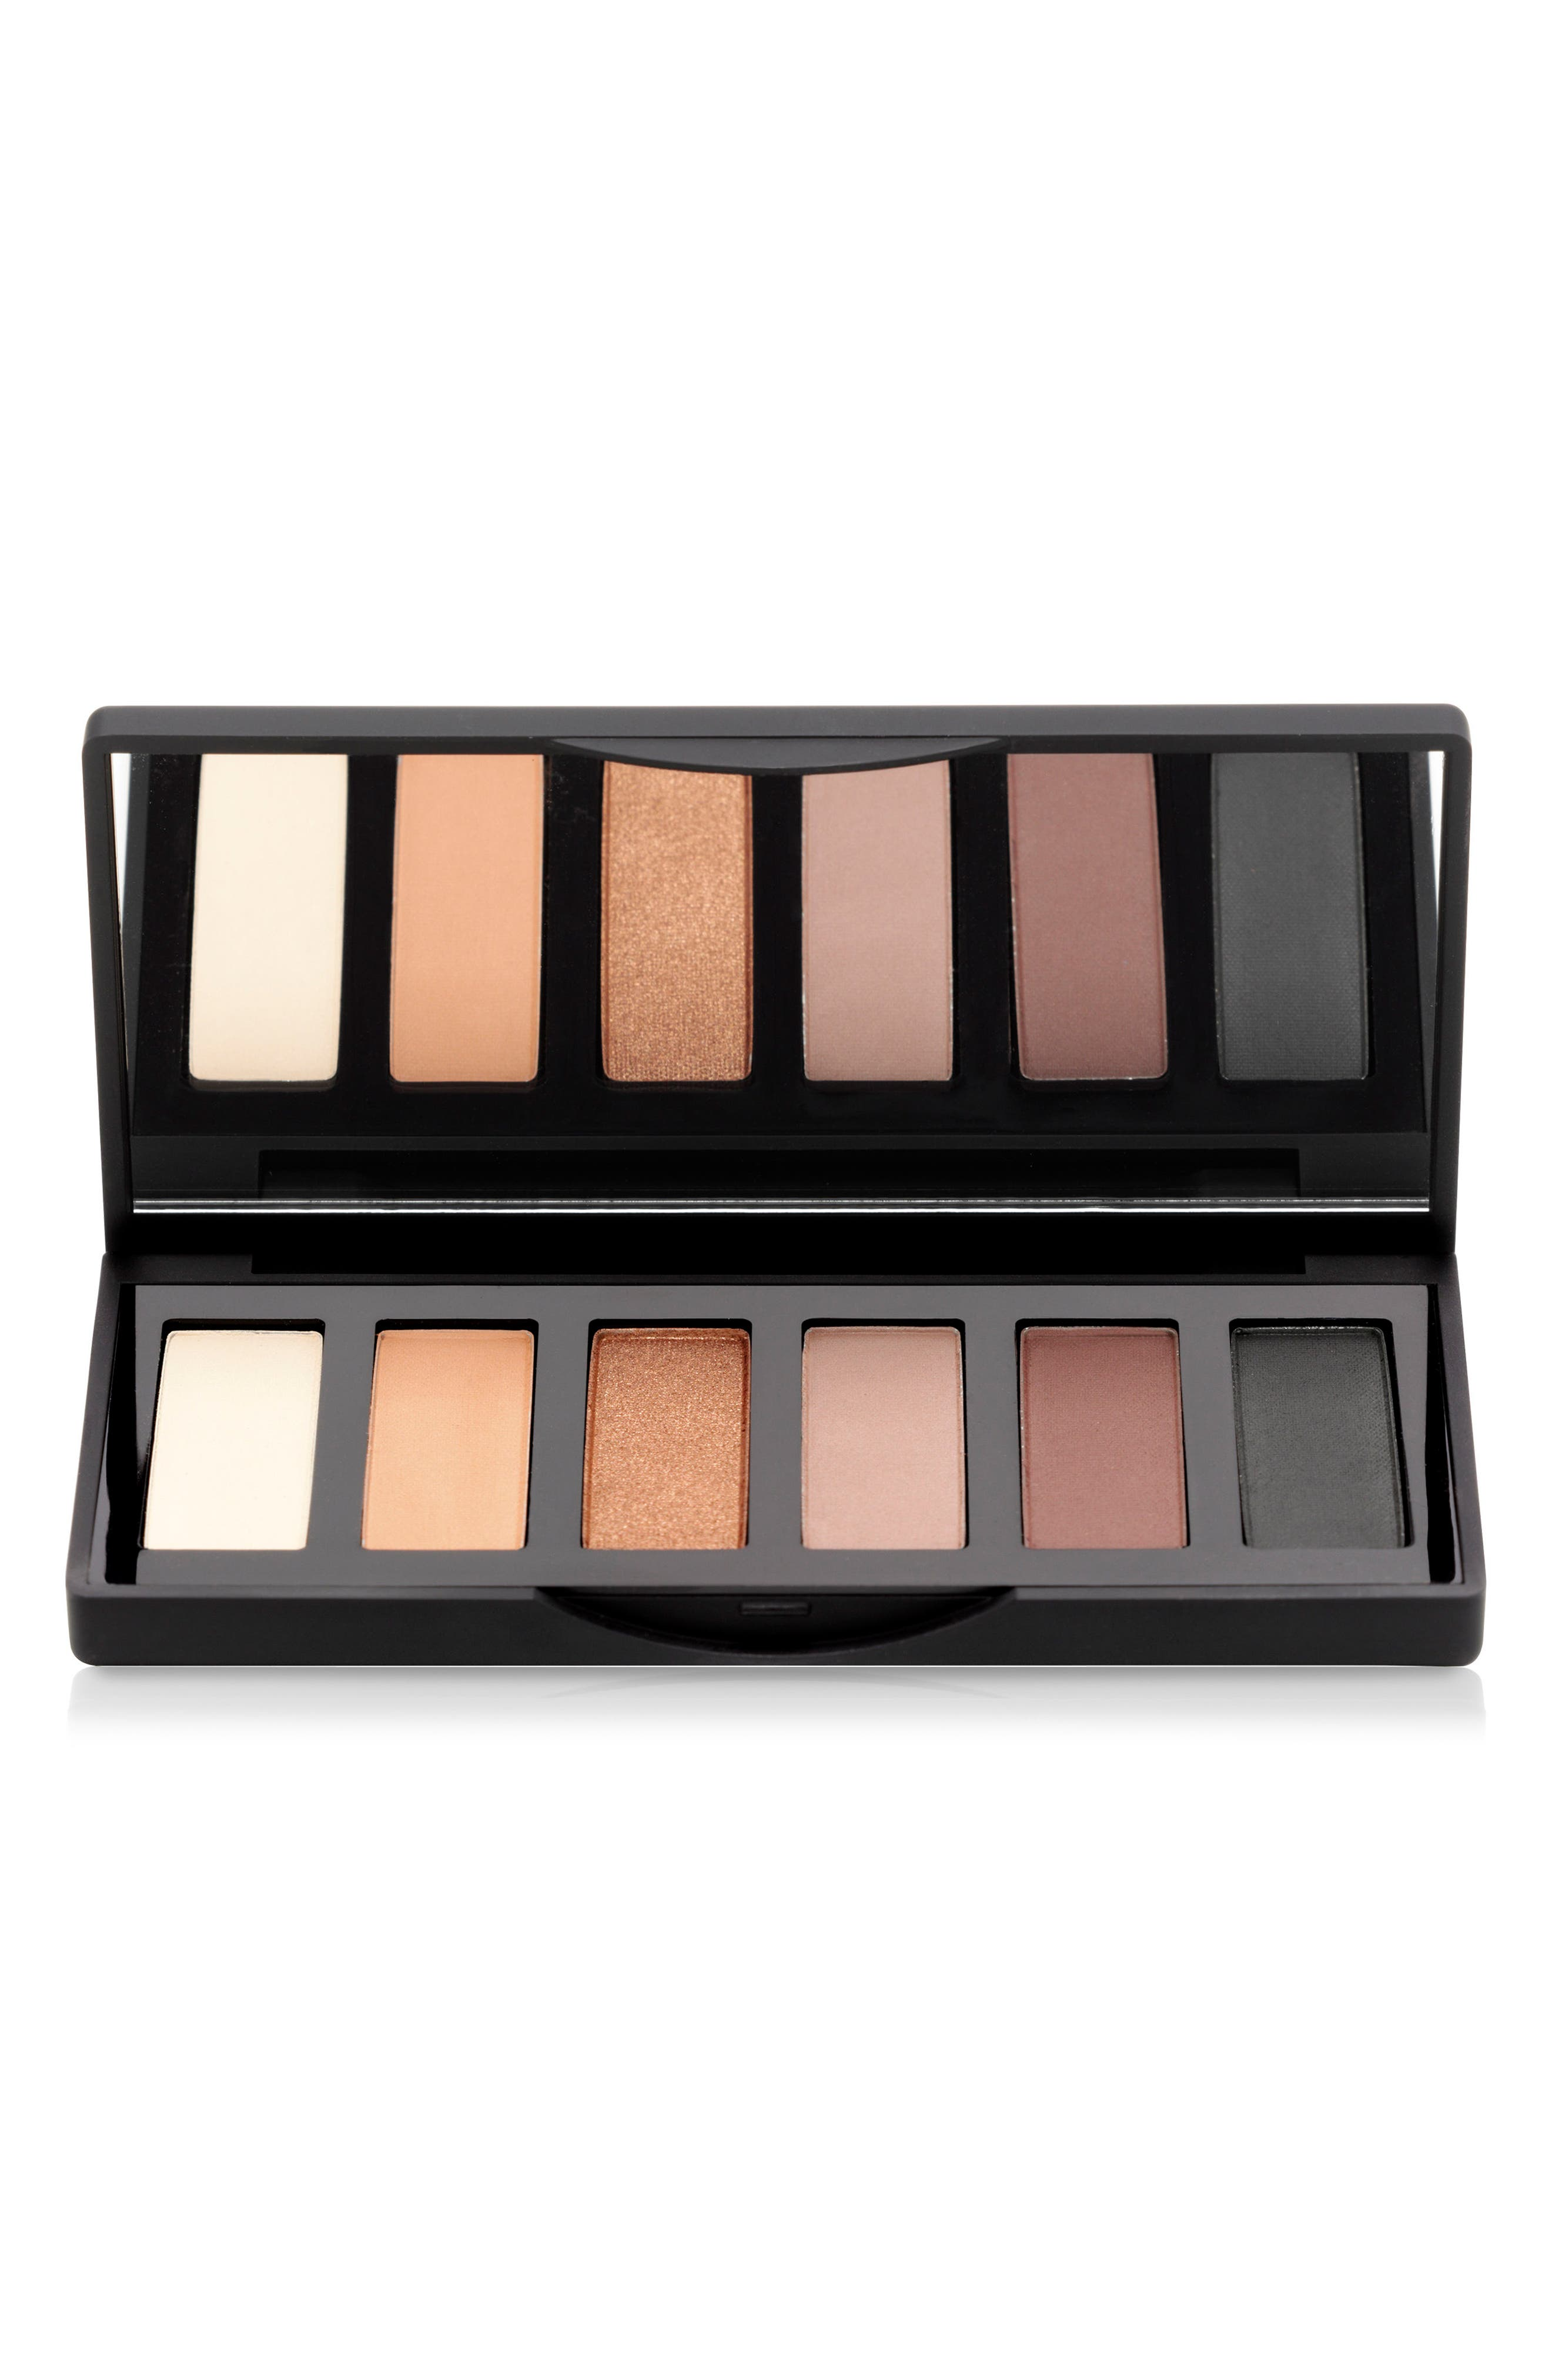 SPACE.NK.apothecary Rodial Smoky Eyeshadow Palette,                             Main thumbnail 1, color,                             001